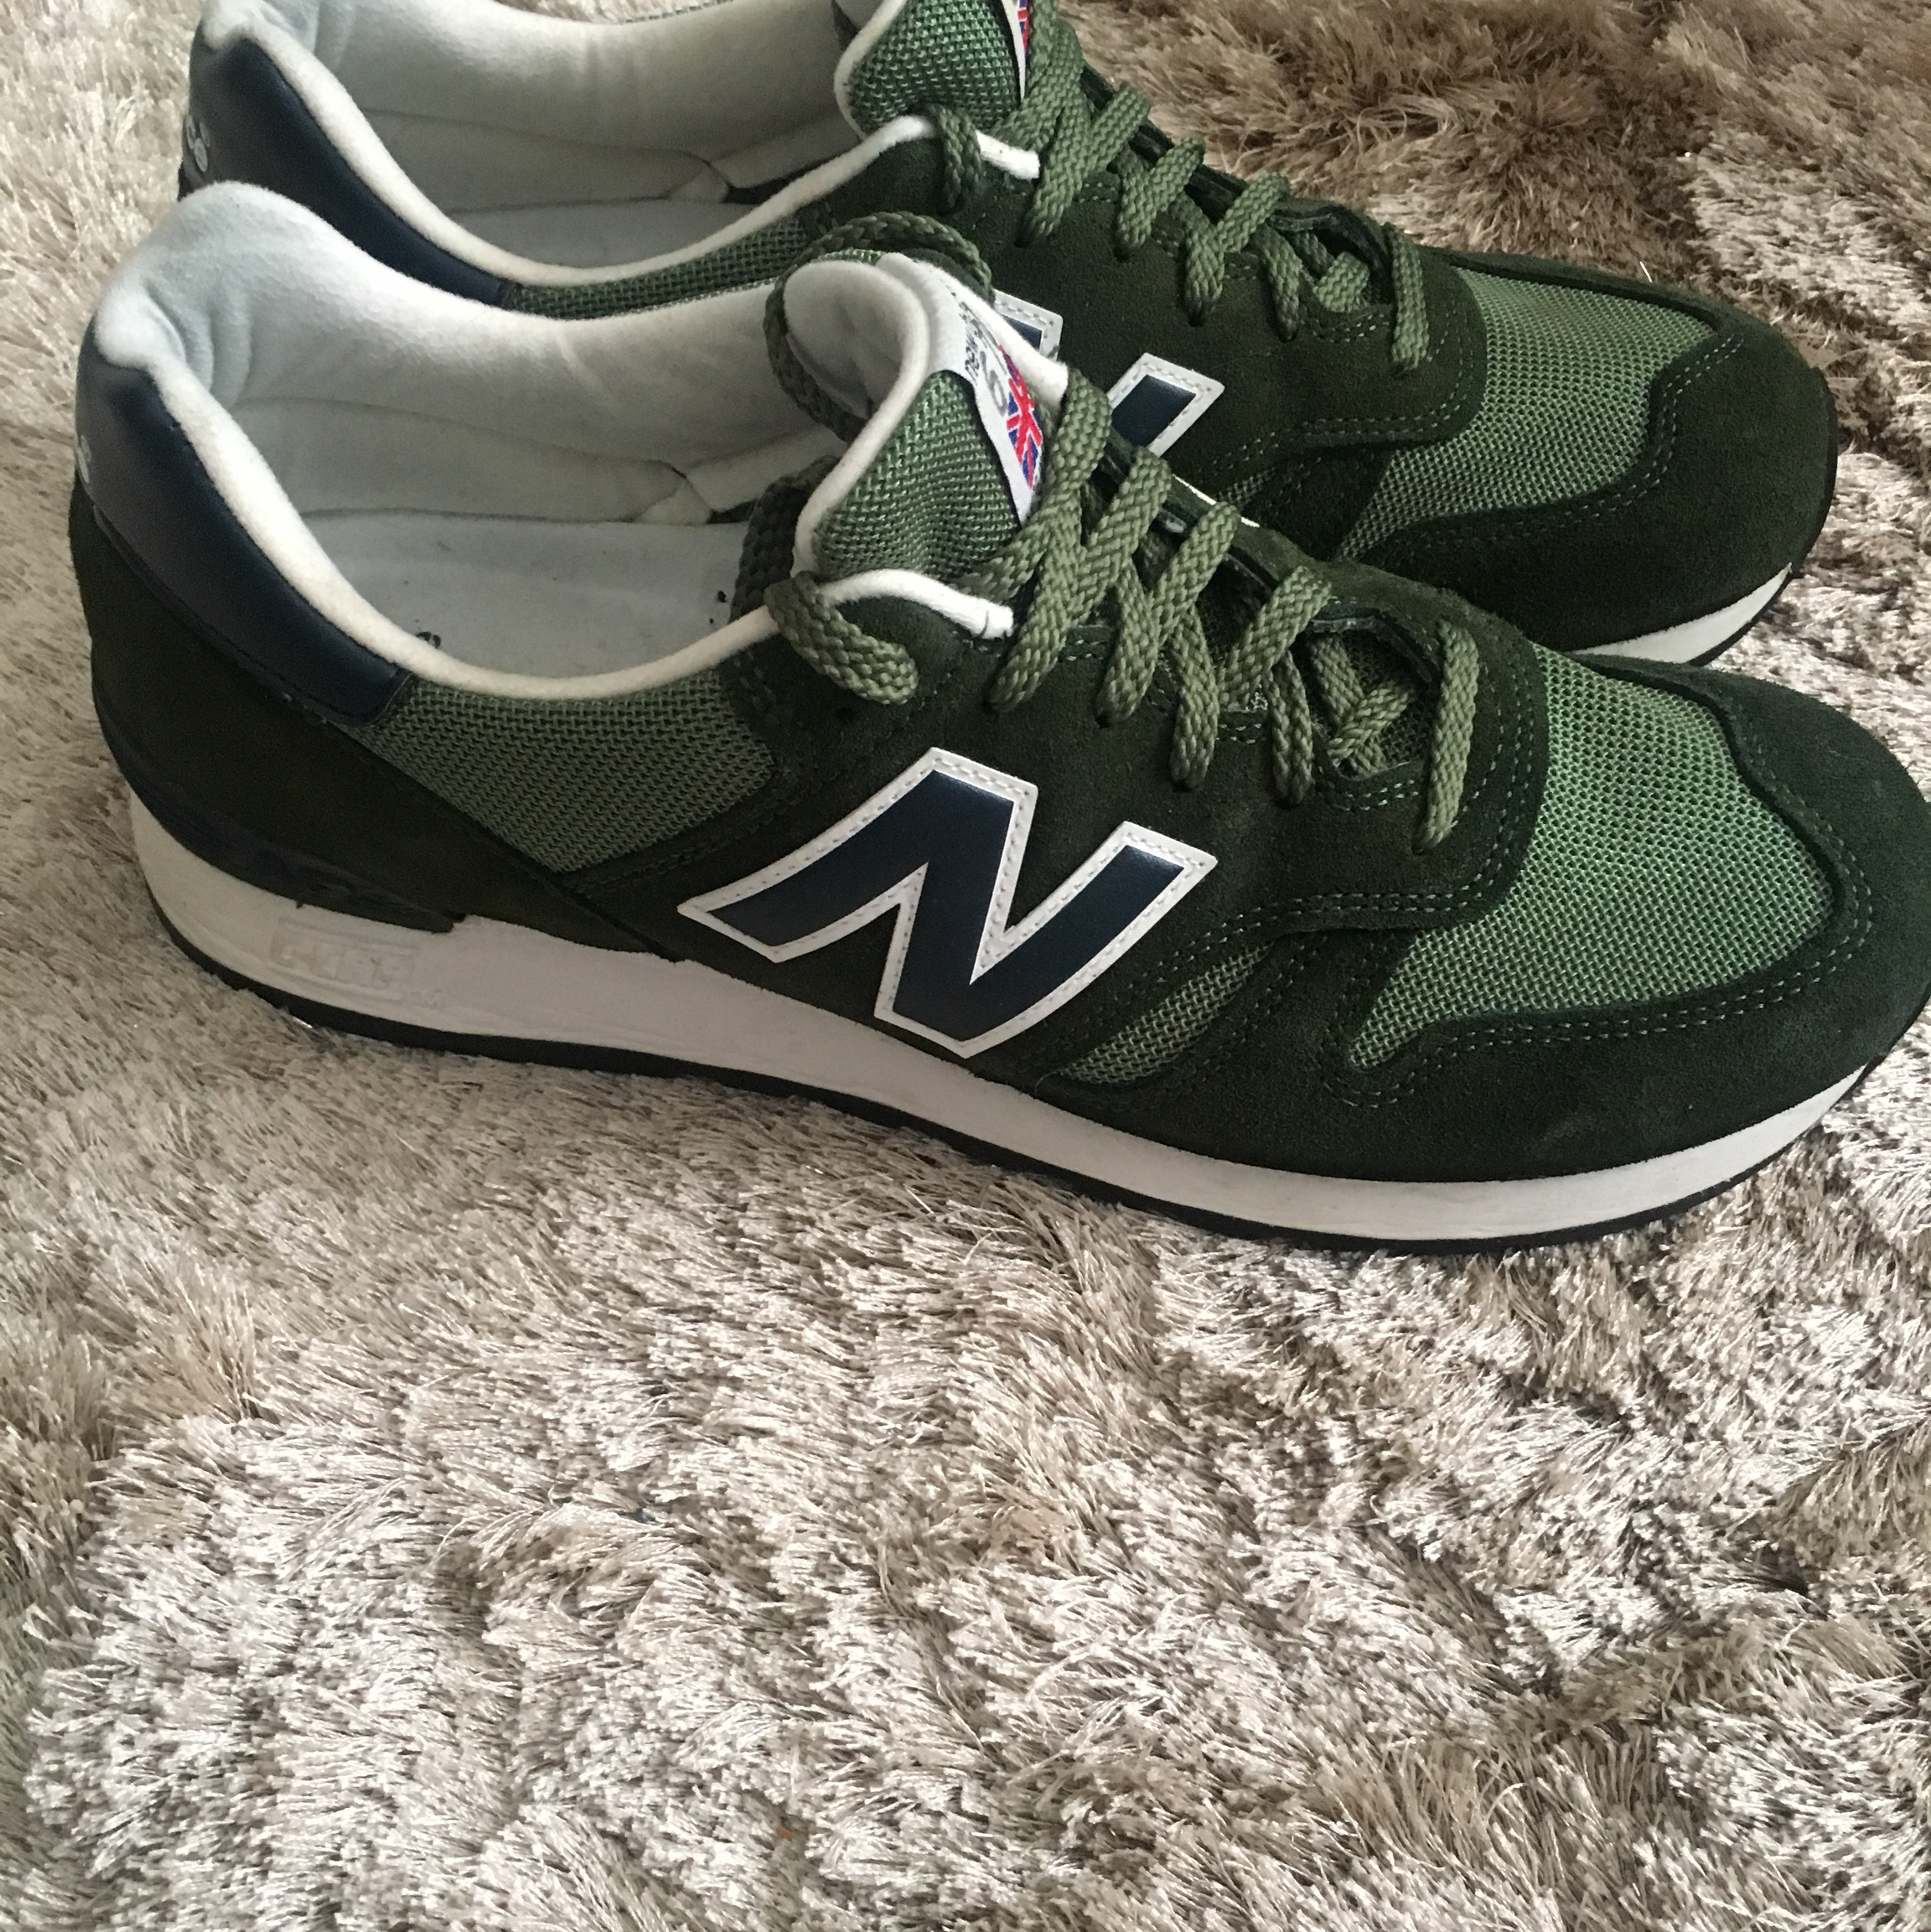 low cost f3d78 d4053 New balance 670 green size 9. Worn once. Postage... - Depop